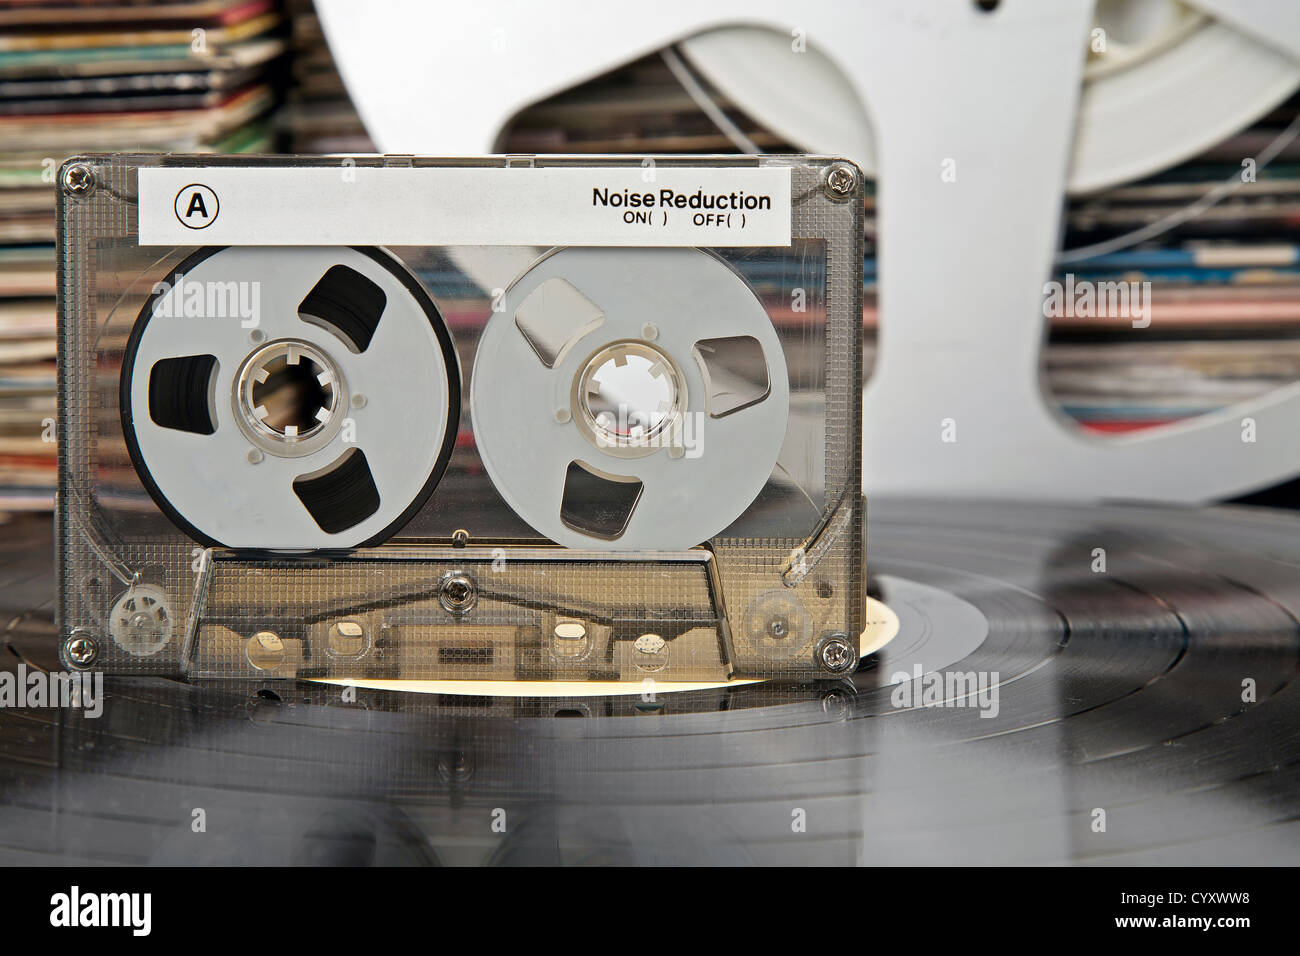 Compact-cassette being on a vinyl record and audio analog tape and vinyl record covers in the distance - Stock Image